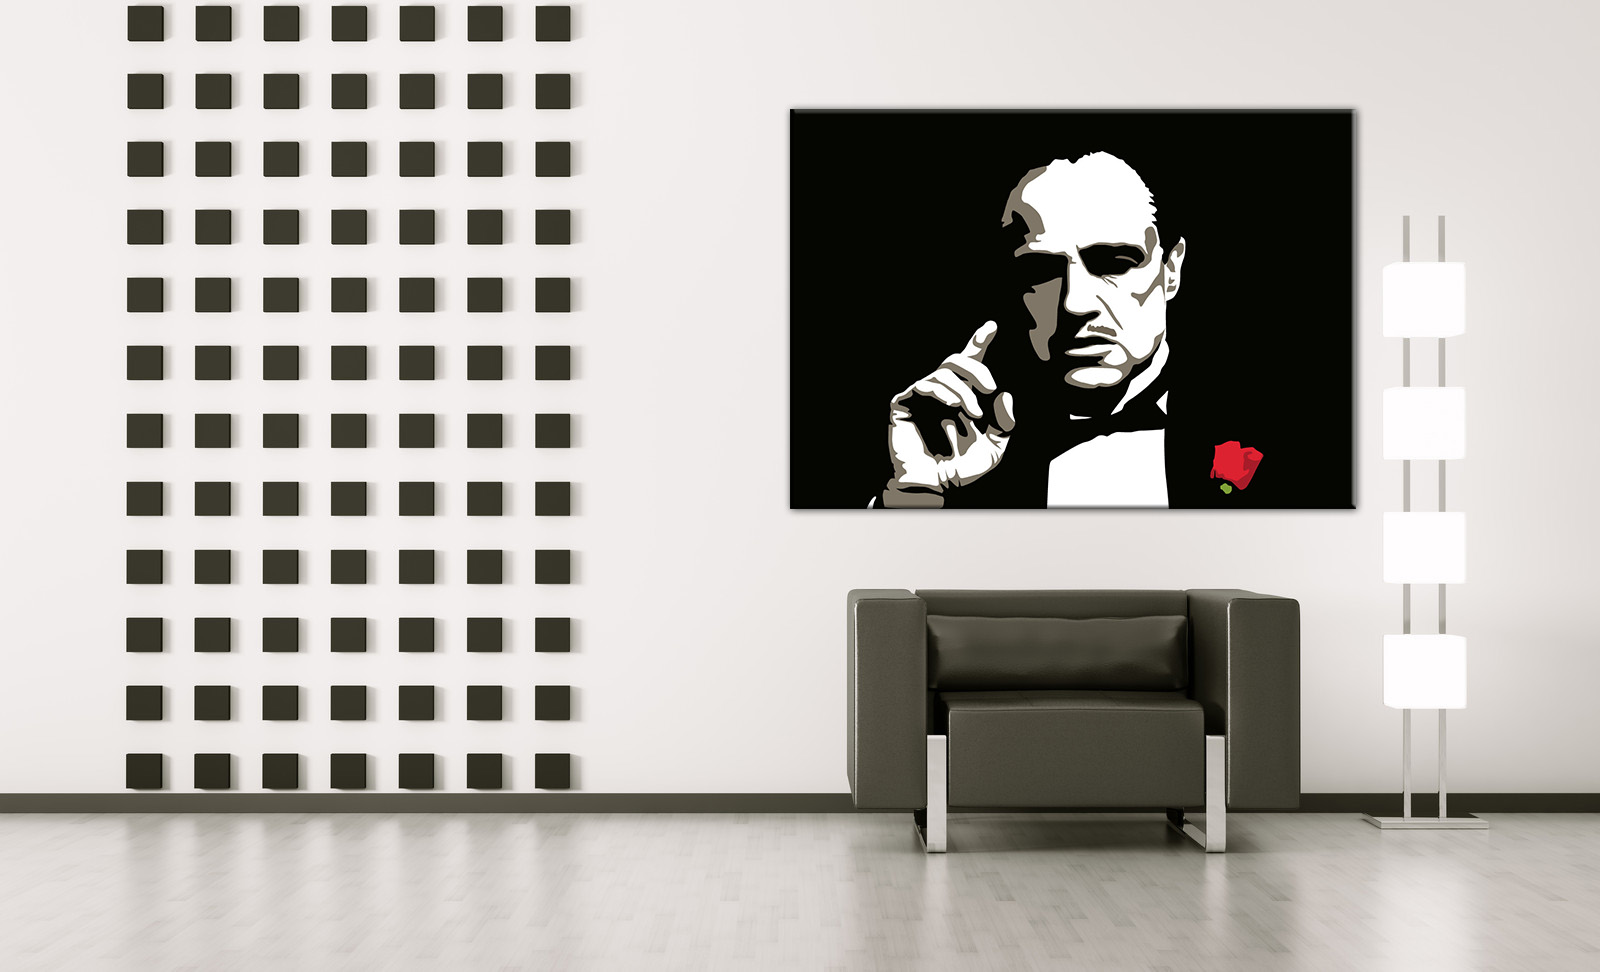 The Godfather Vito Corleone / Marlon Brando POP ART obraz